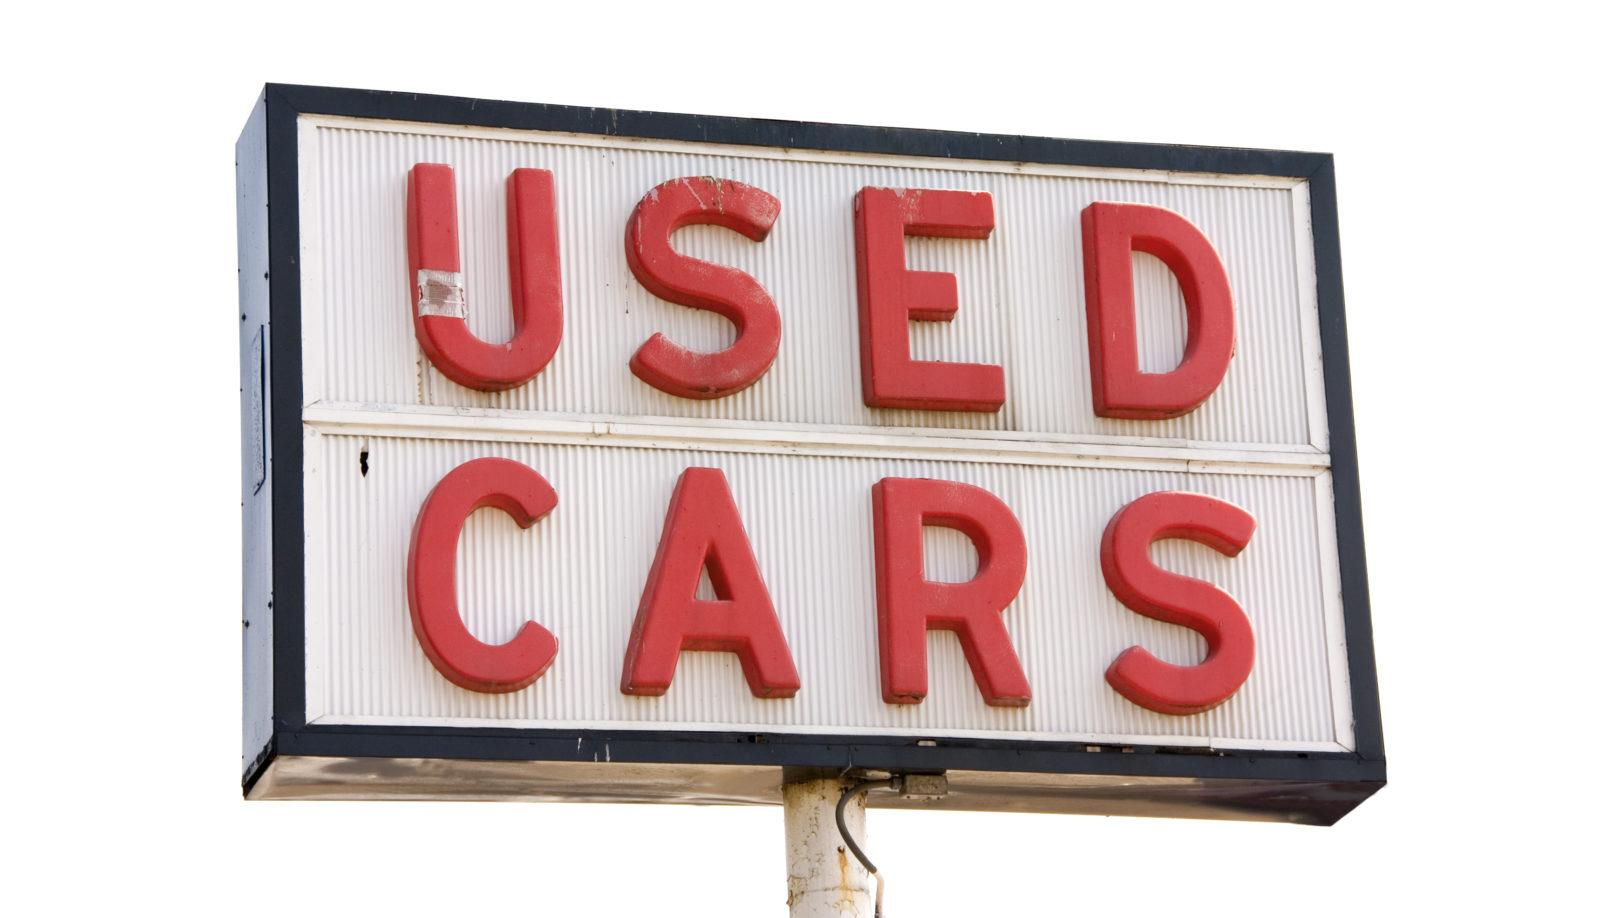 10 10 tips for car buying - The Economic Turmoil Of Recent Years Has Had An Unexpected Affect On The Availability Of Used Cars Across The Country As Households Tighten Their Belts And